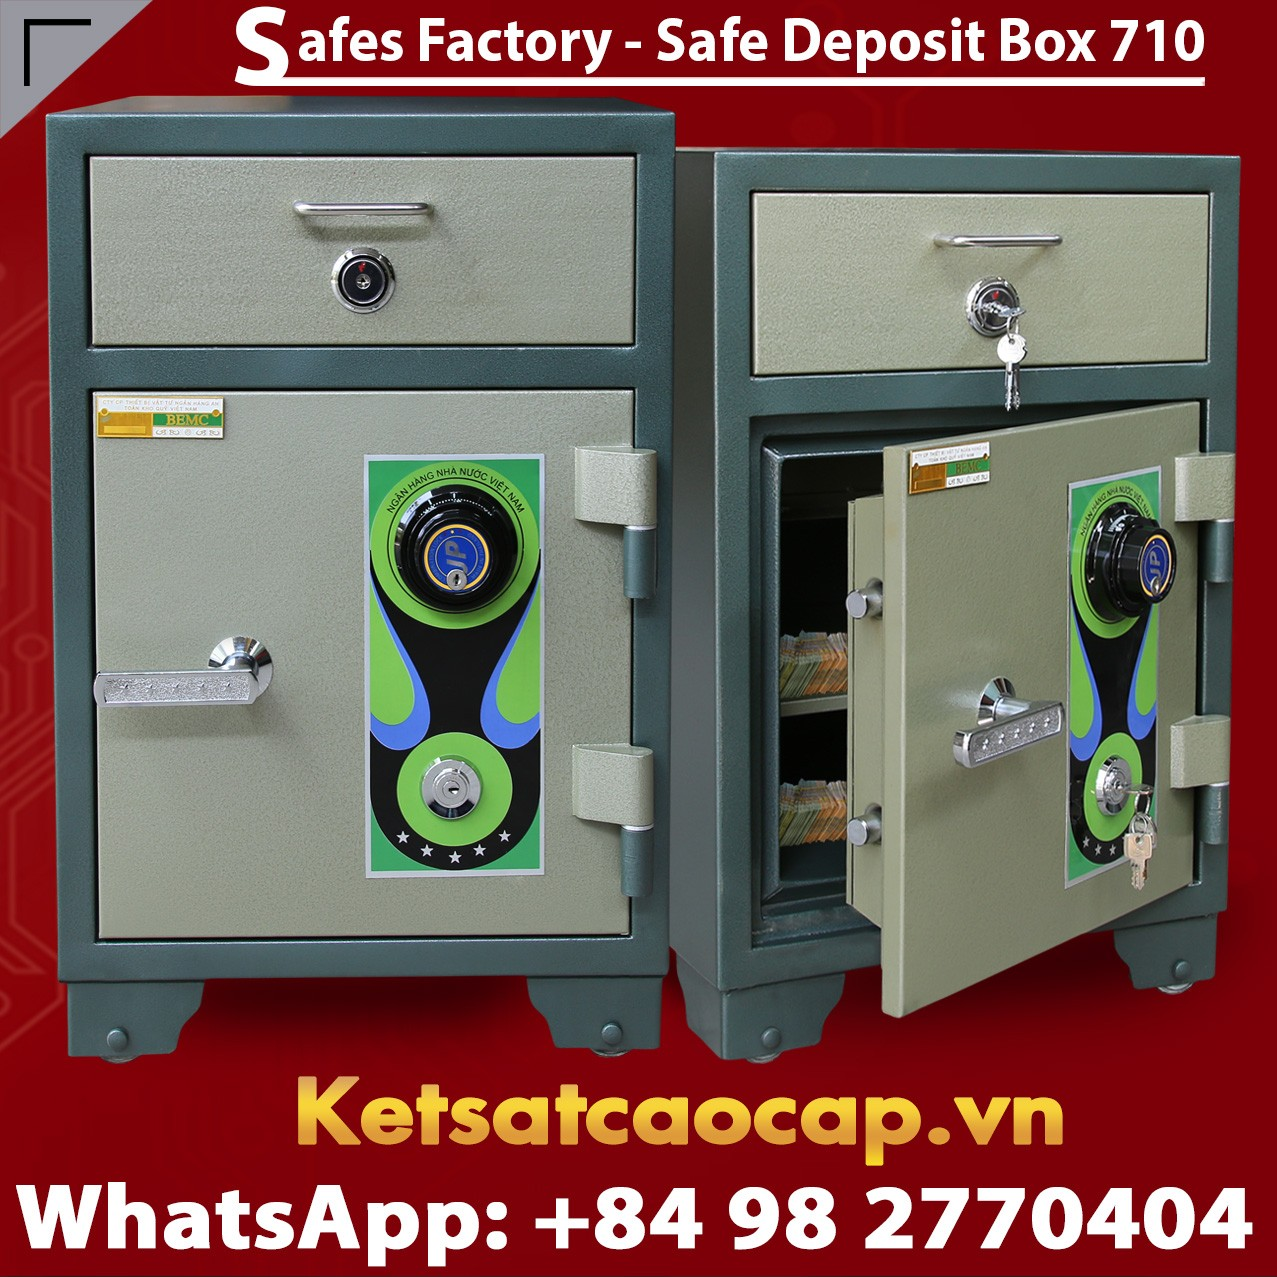 Bank Safes Factory